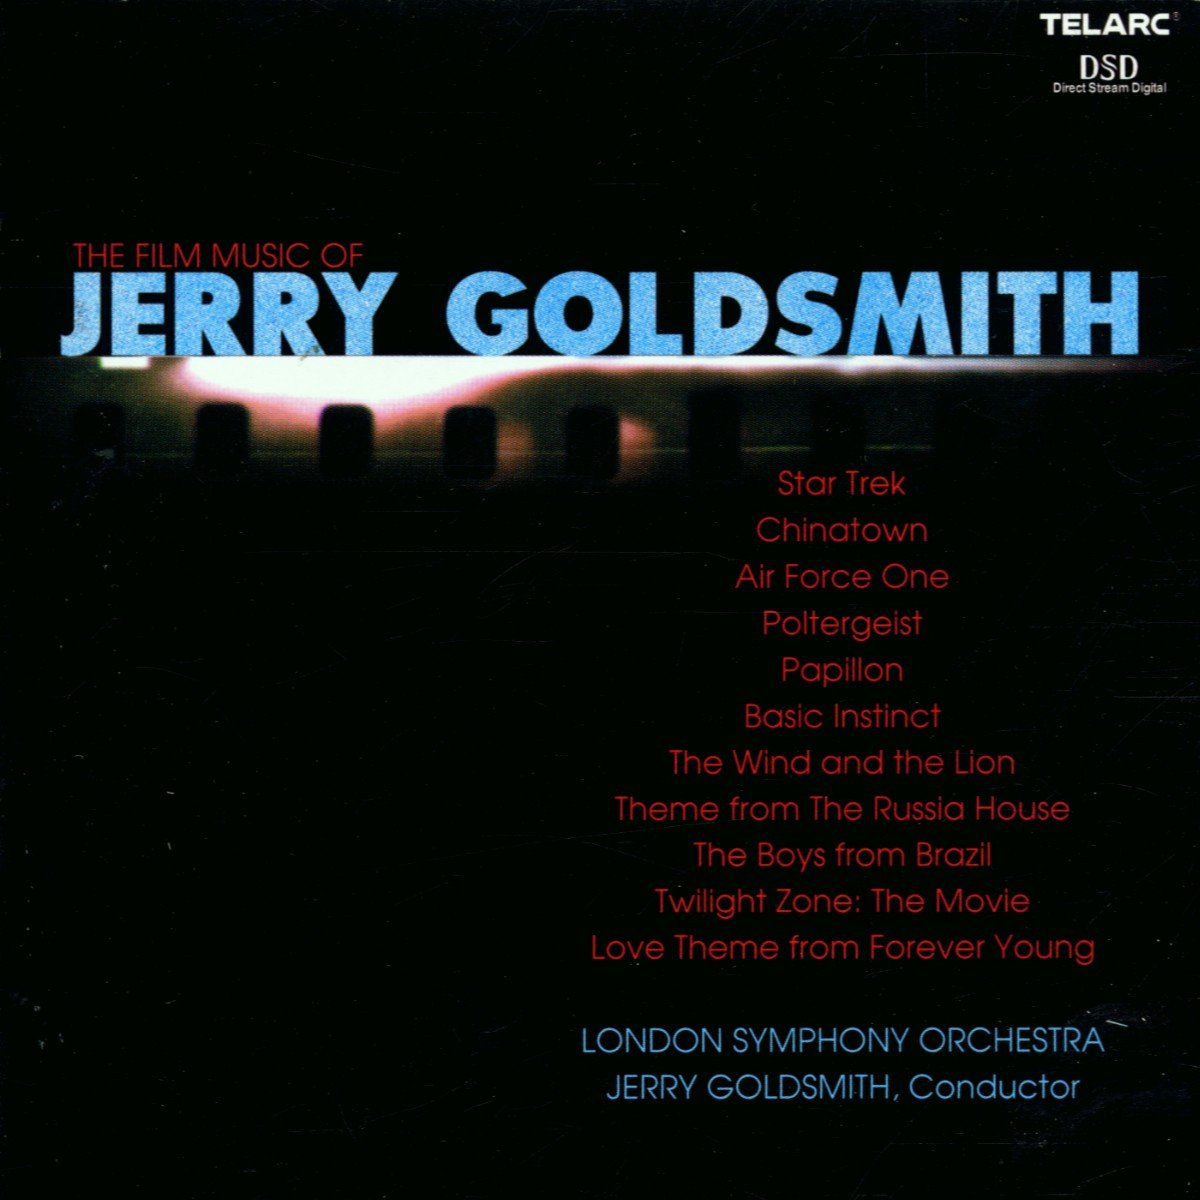 The Film Music Of Jerry Goldsmith by Telarc